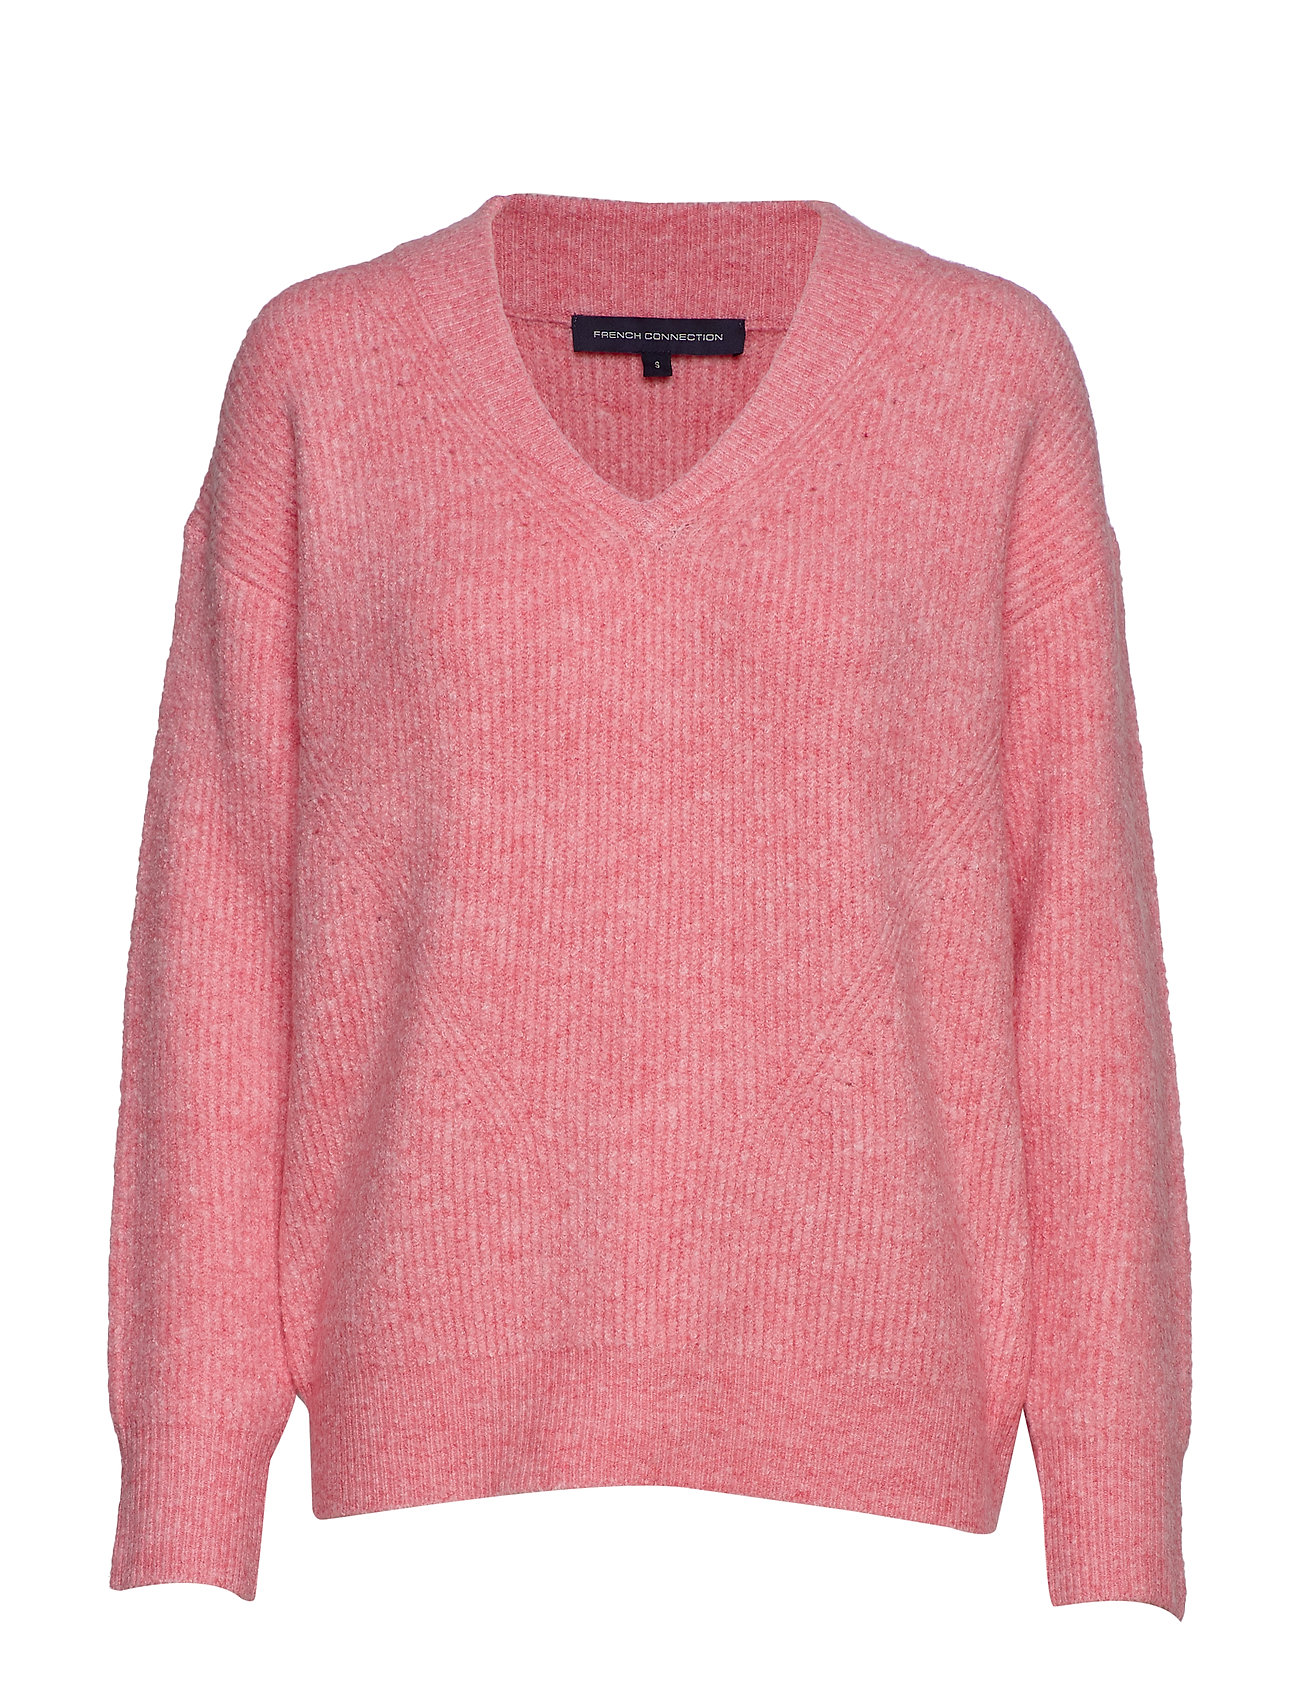 FRENCH CONNECTION Flossy Teri L/S V Nk Jumper Strickpullover Pink FRENCH CONNECTION